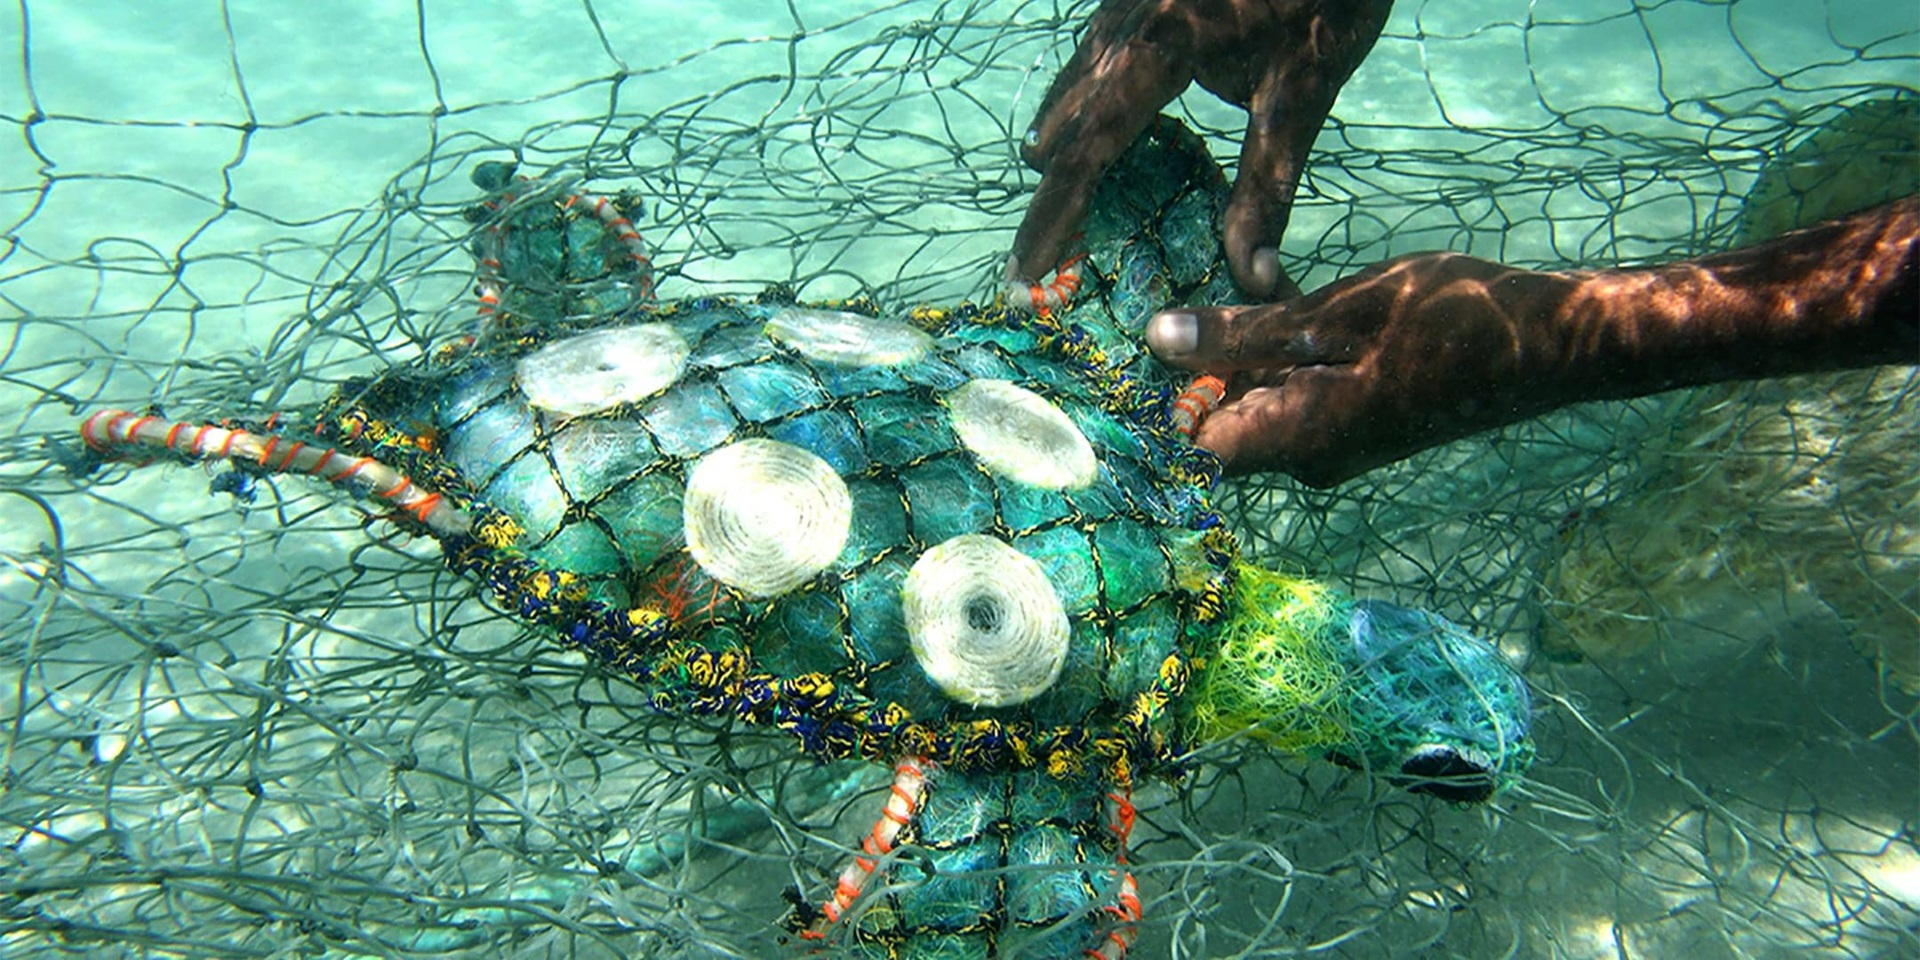 Ghost nets - turtle, by Erub Arts.